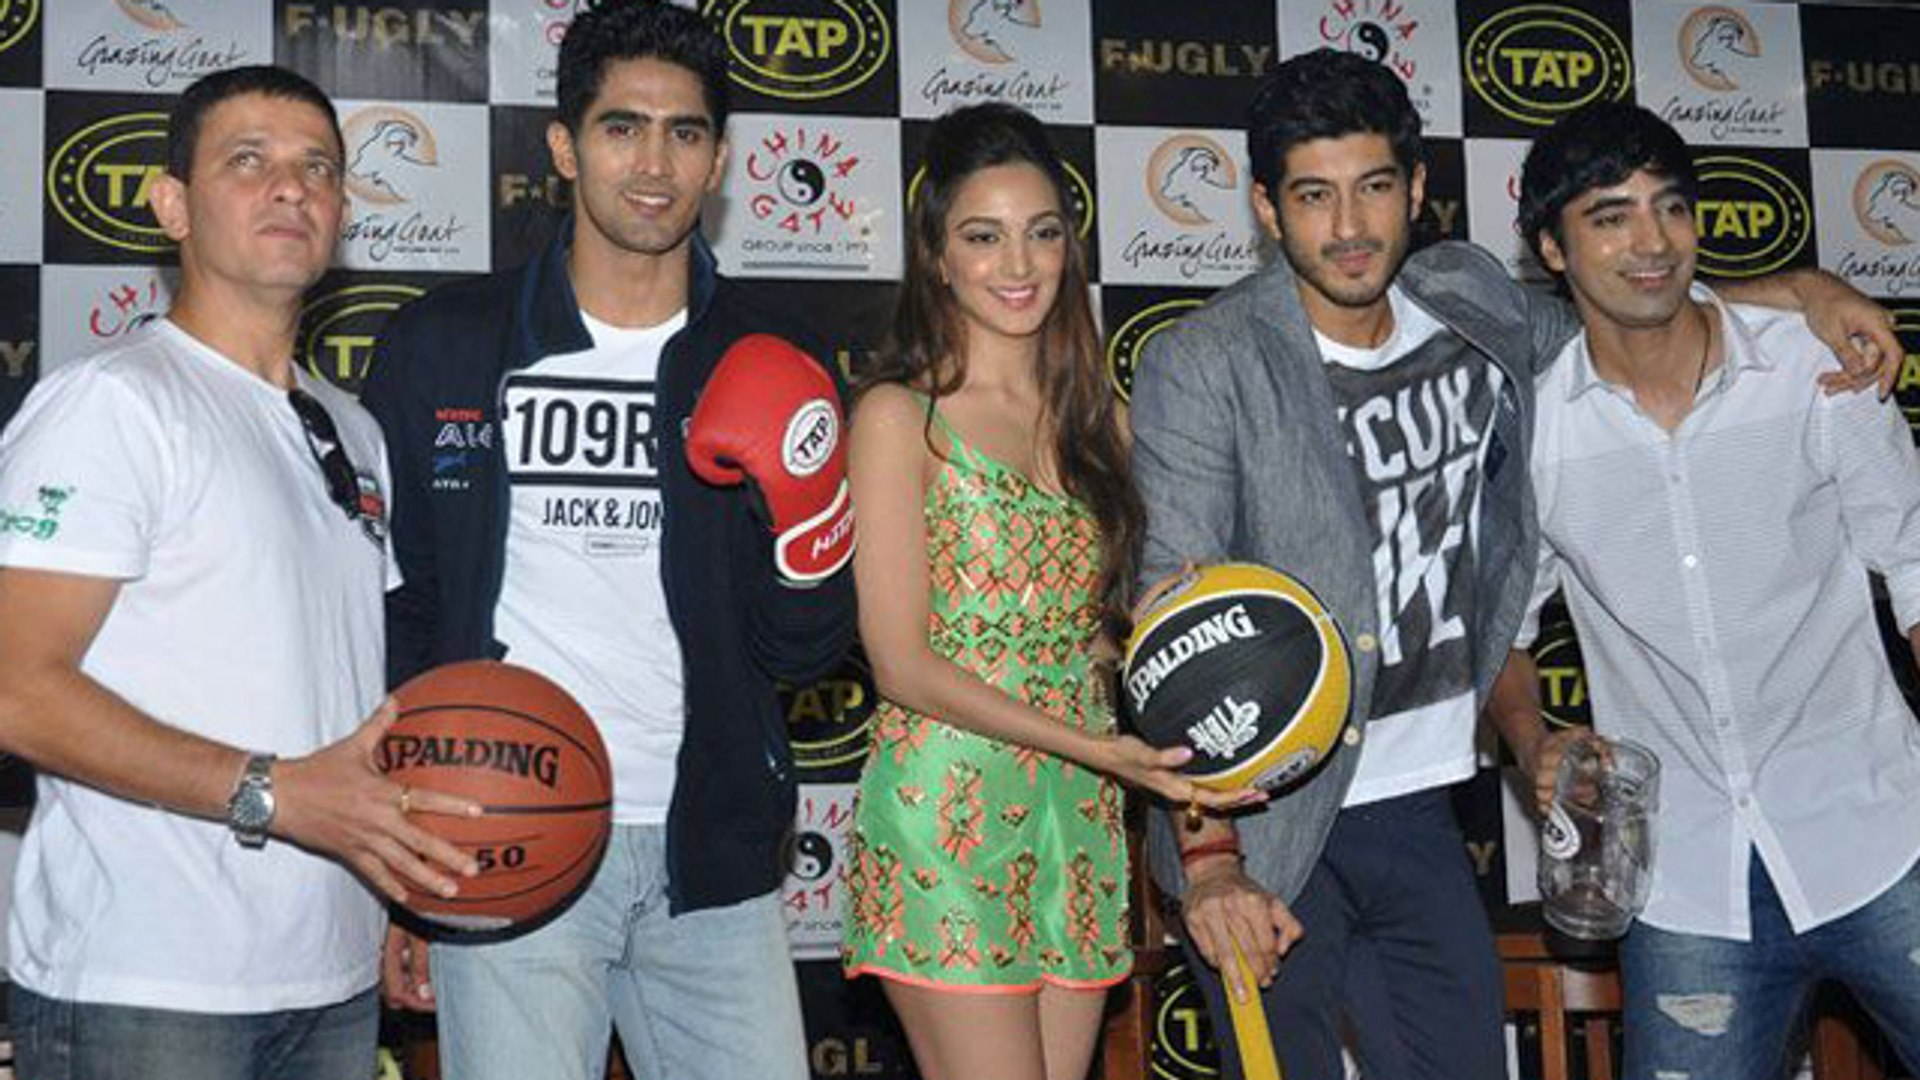 Fugly Team @ Tap Sports Bar Launch | Kabir Sadanand, Vijendra Singh, Kiara Advani